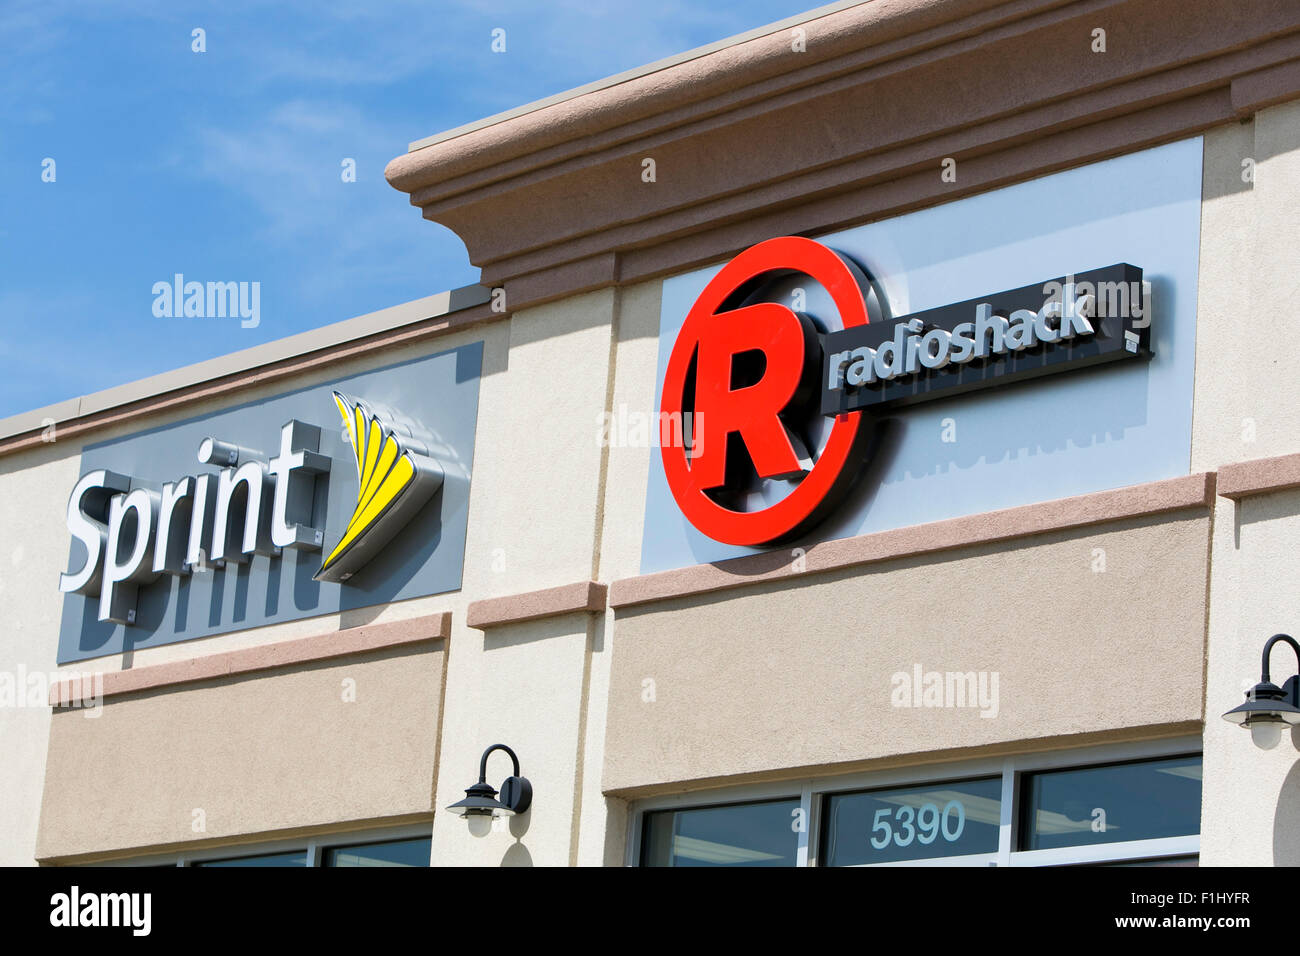 A logo sign outside of a joint Sprint and Radioshack store in Kansas City, Kansas on August 23, 2015. - Stock Image